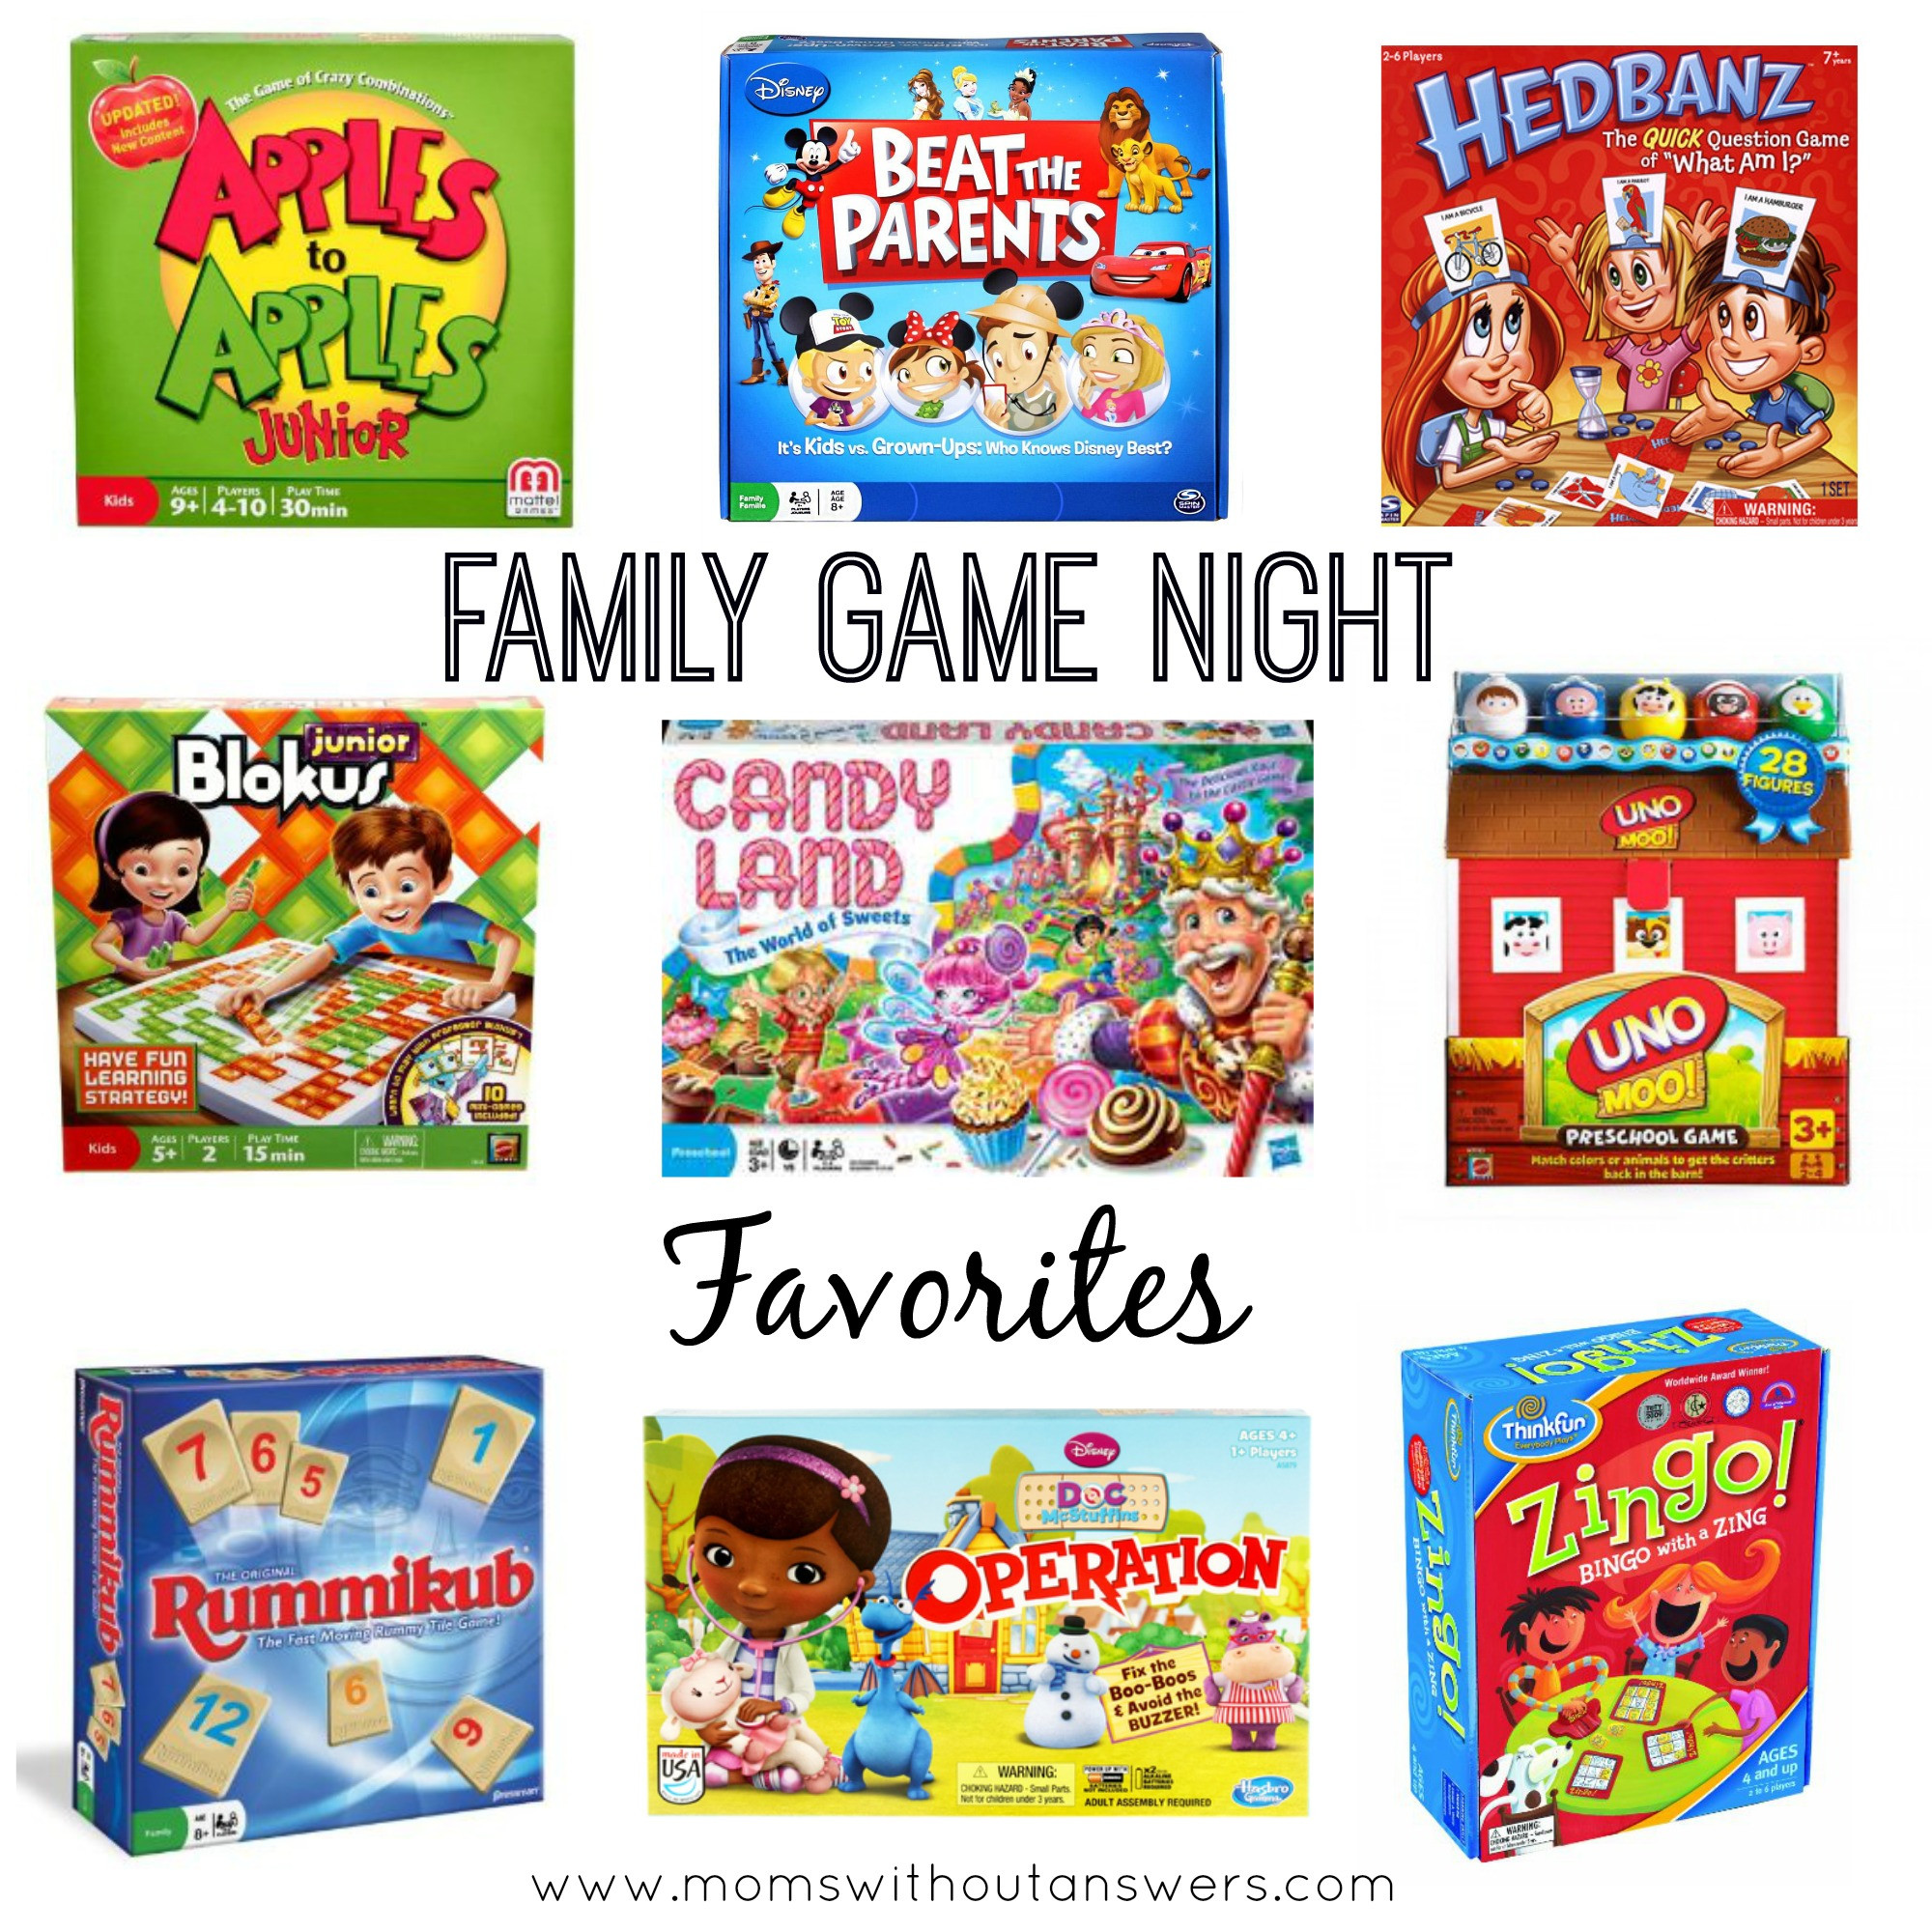 Fun Family Board Games Luxury Favorite Family Board Games Moms without Answers Of Lovely 47 Photos Fun Family Board Games